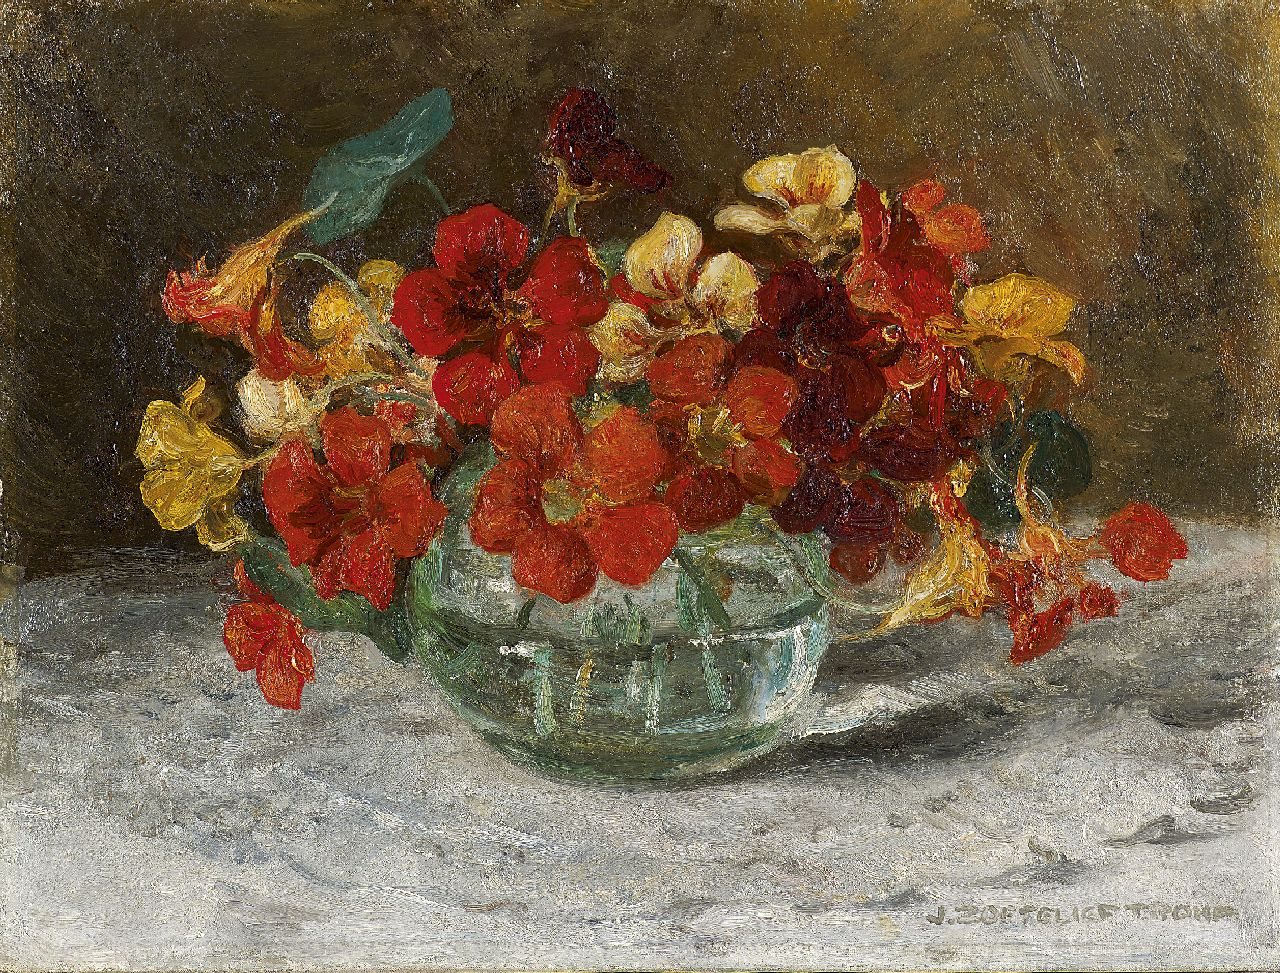 Zoetelief Tromp J.  | Johannes 'Jan' Zoetelief Tromp, Nasturtium, oil on canvas 30.3 x 40.3 cm, signed l.r.